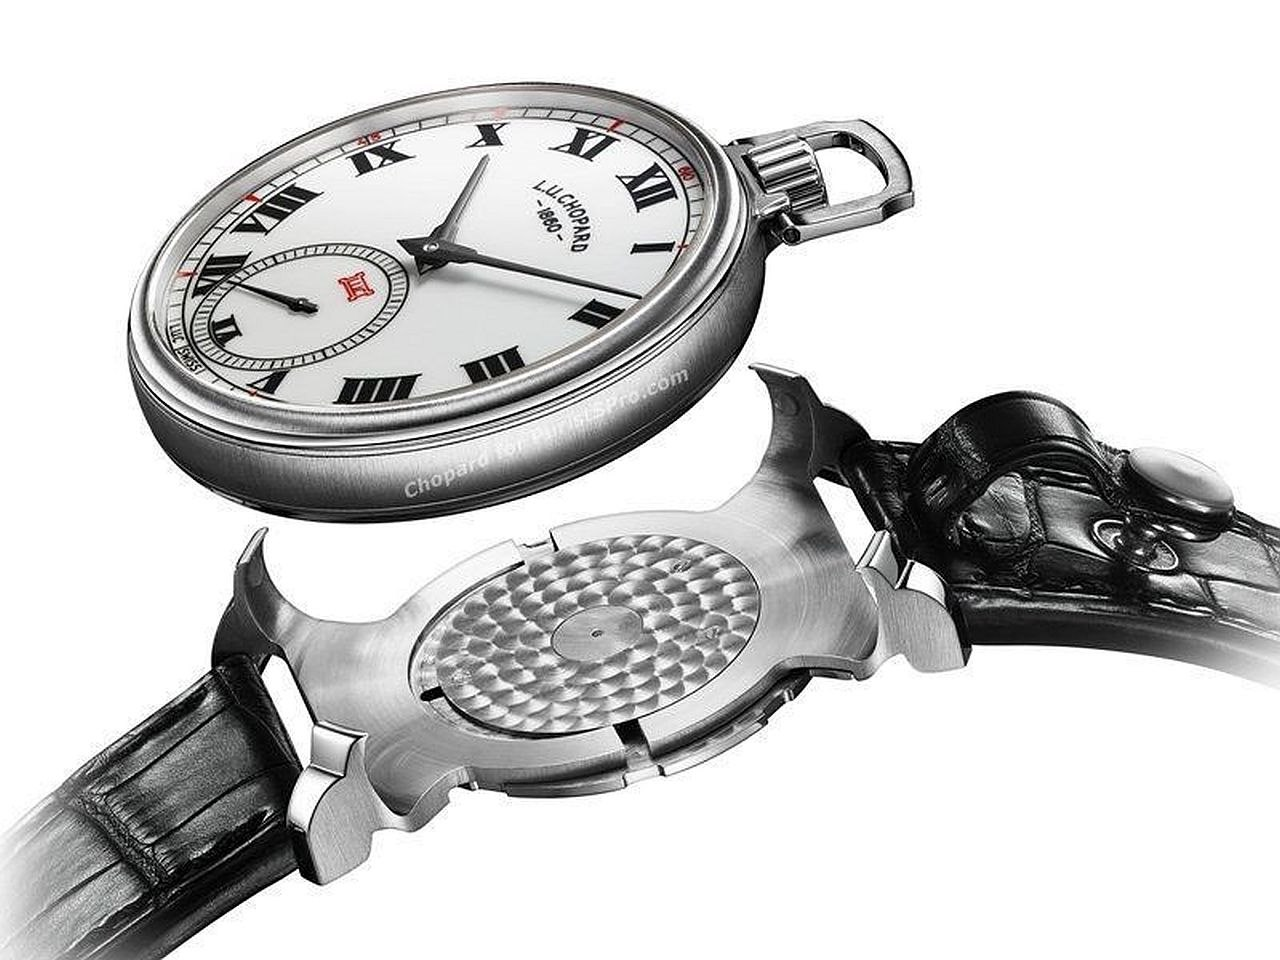 Tribute to L.U. Chopard with modern version of watch clip